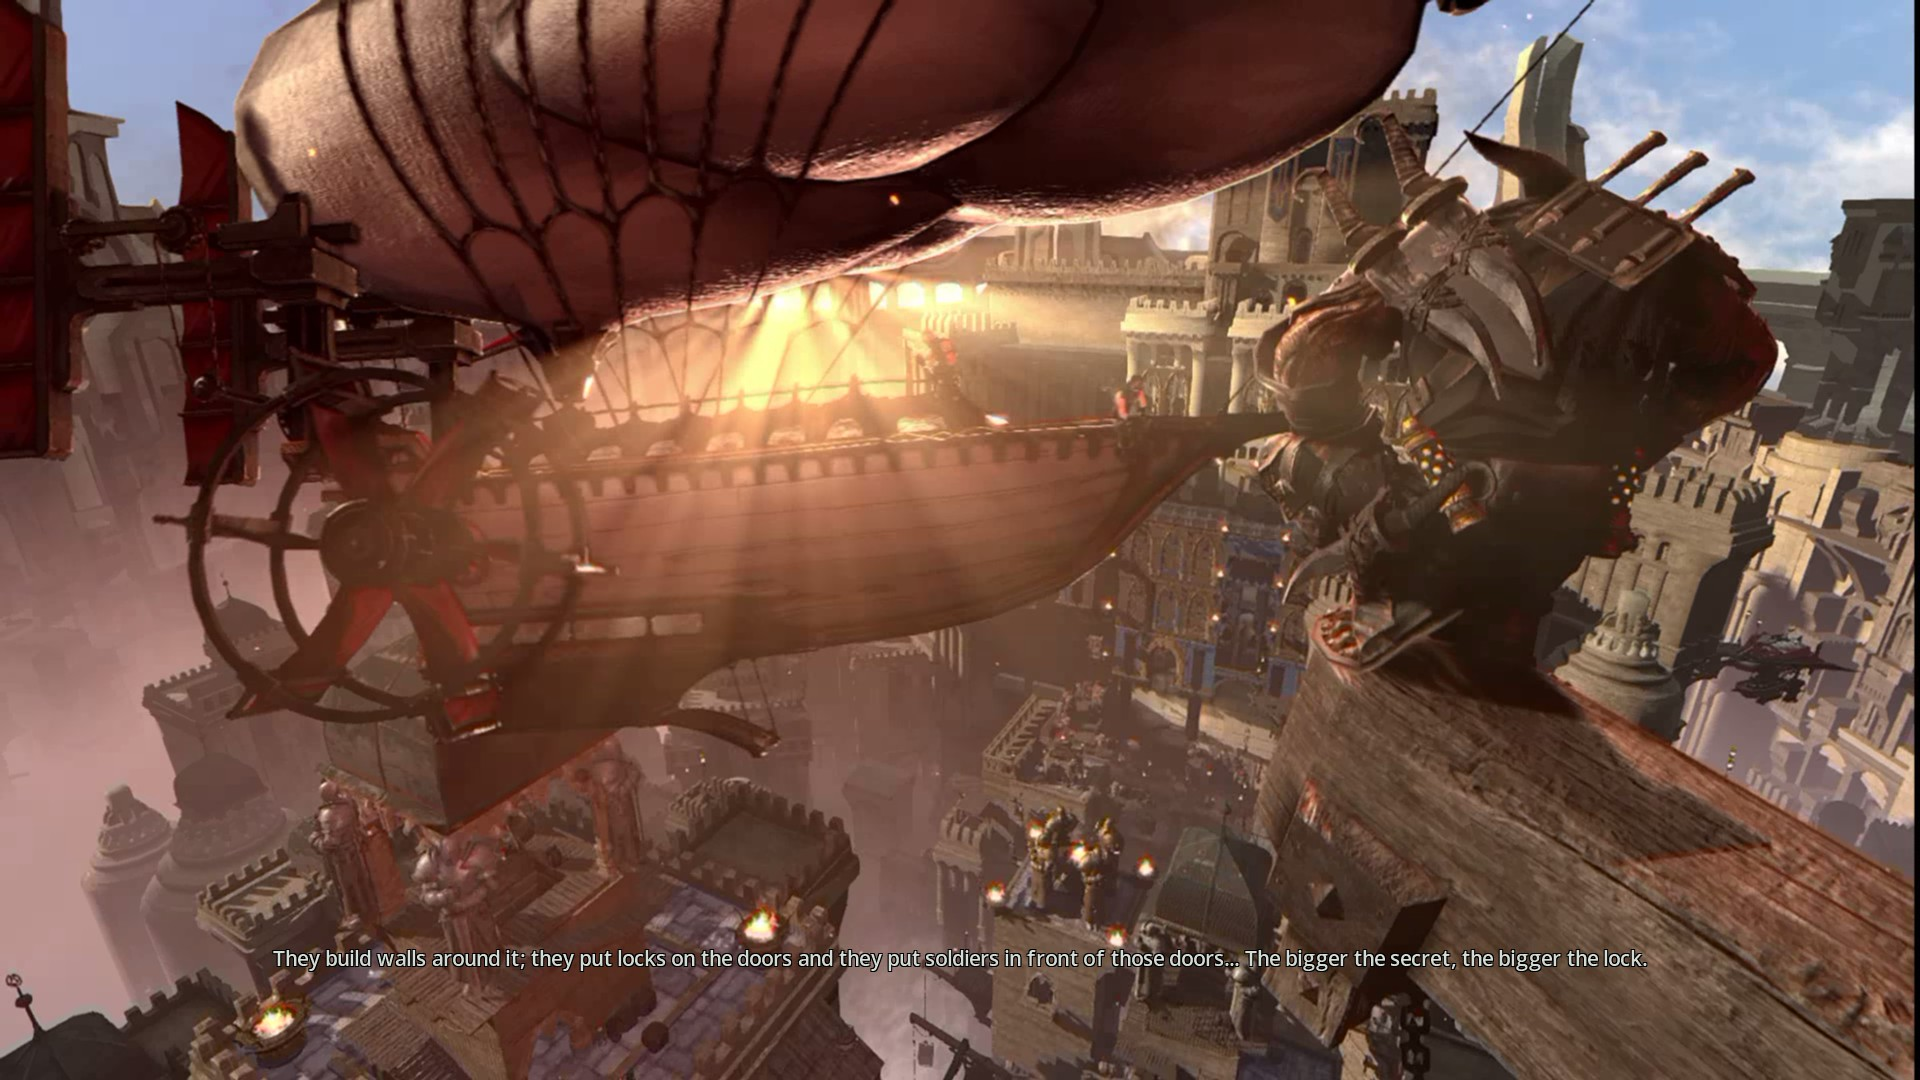 Airships=Steampunky aesthetic.